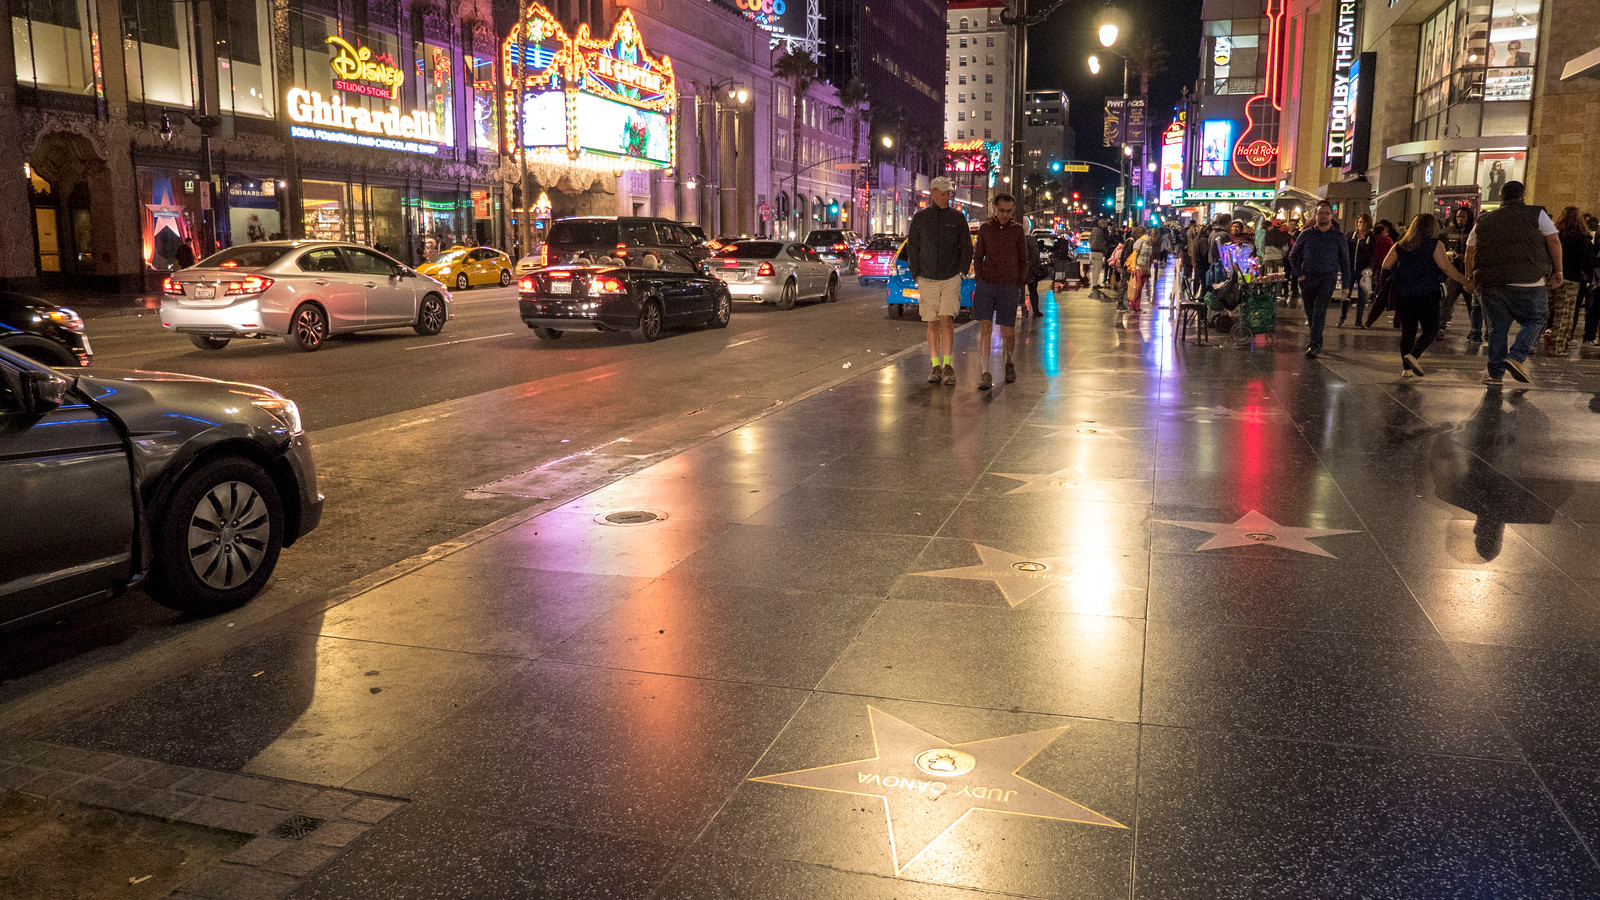 Hollywood Walk of Fame - Visiting Los Angeles for 1 day